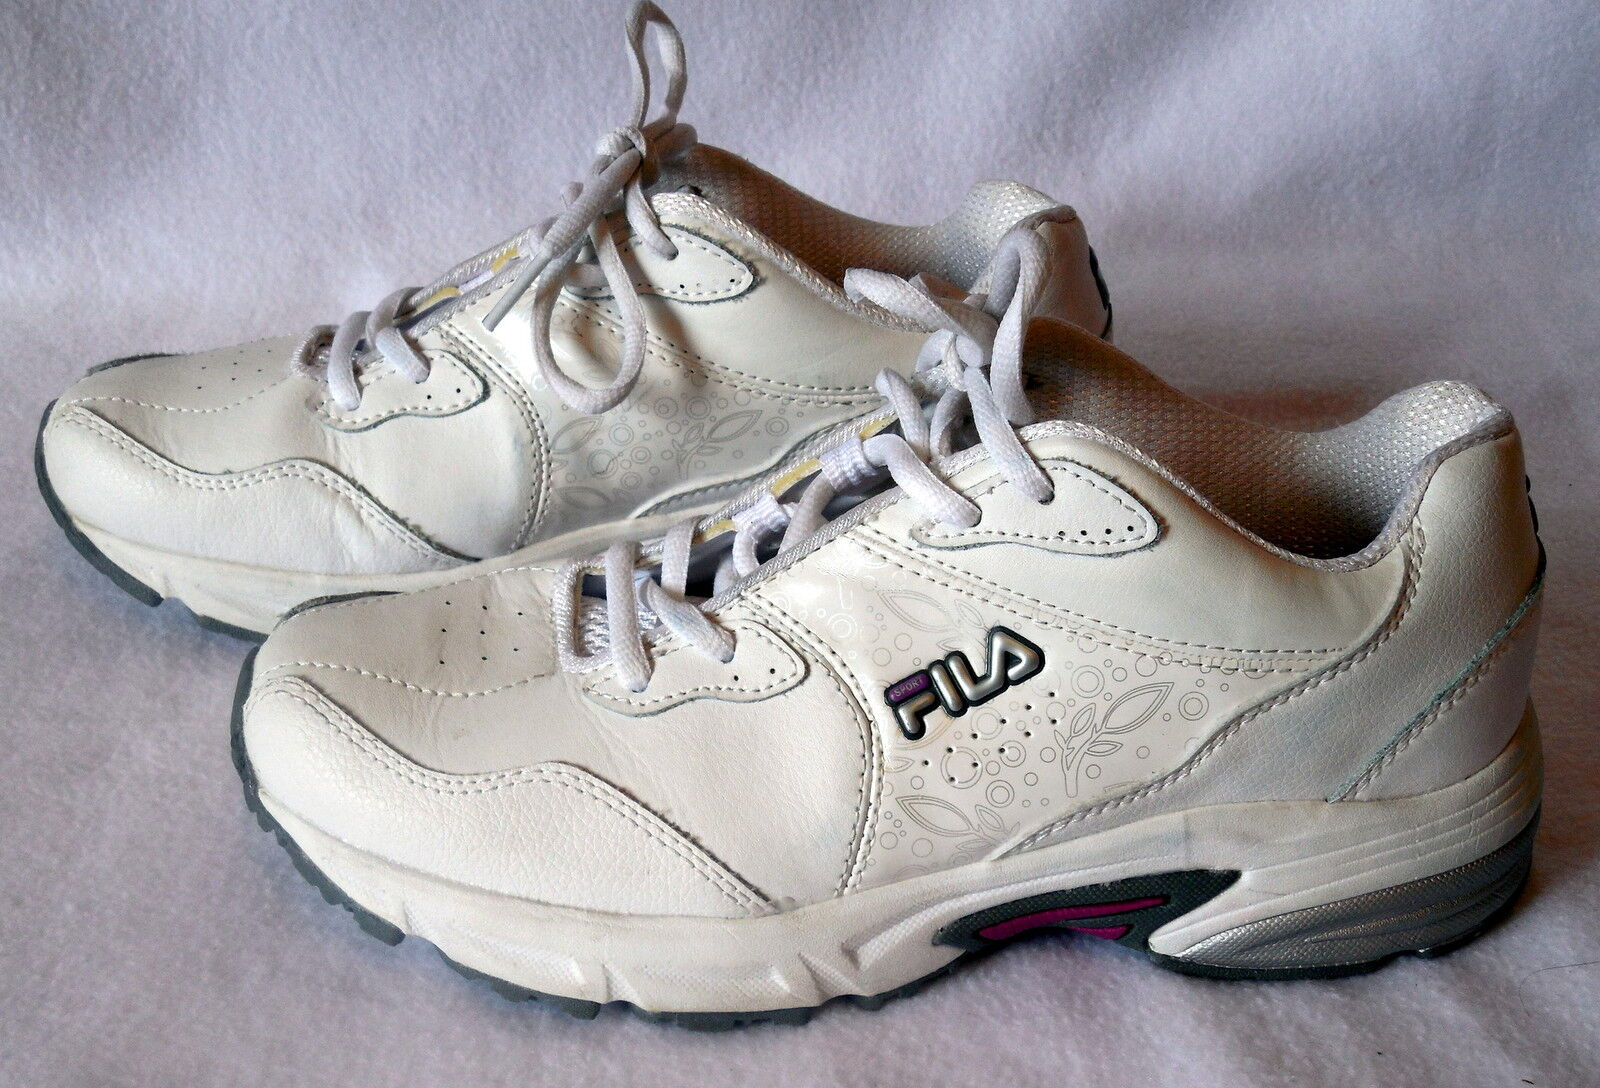 FILA Womens white ATHLETIC SHOE size 7.5  W52 The latest discount shoes for men and women